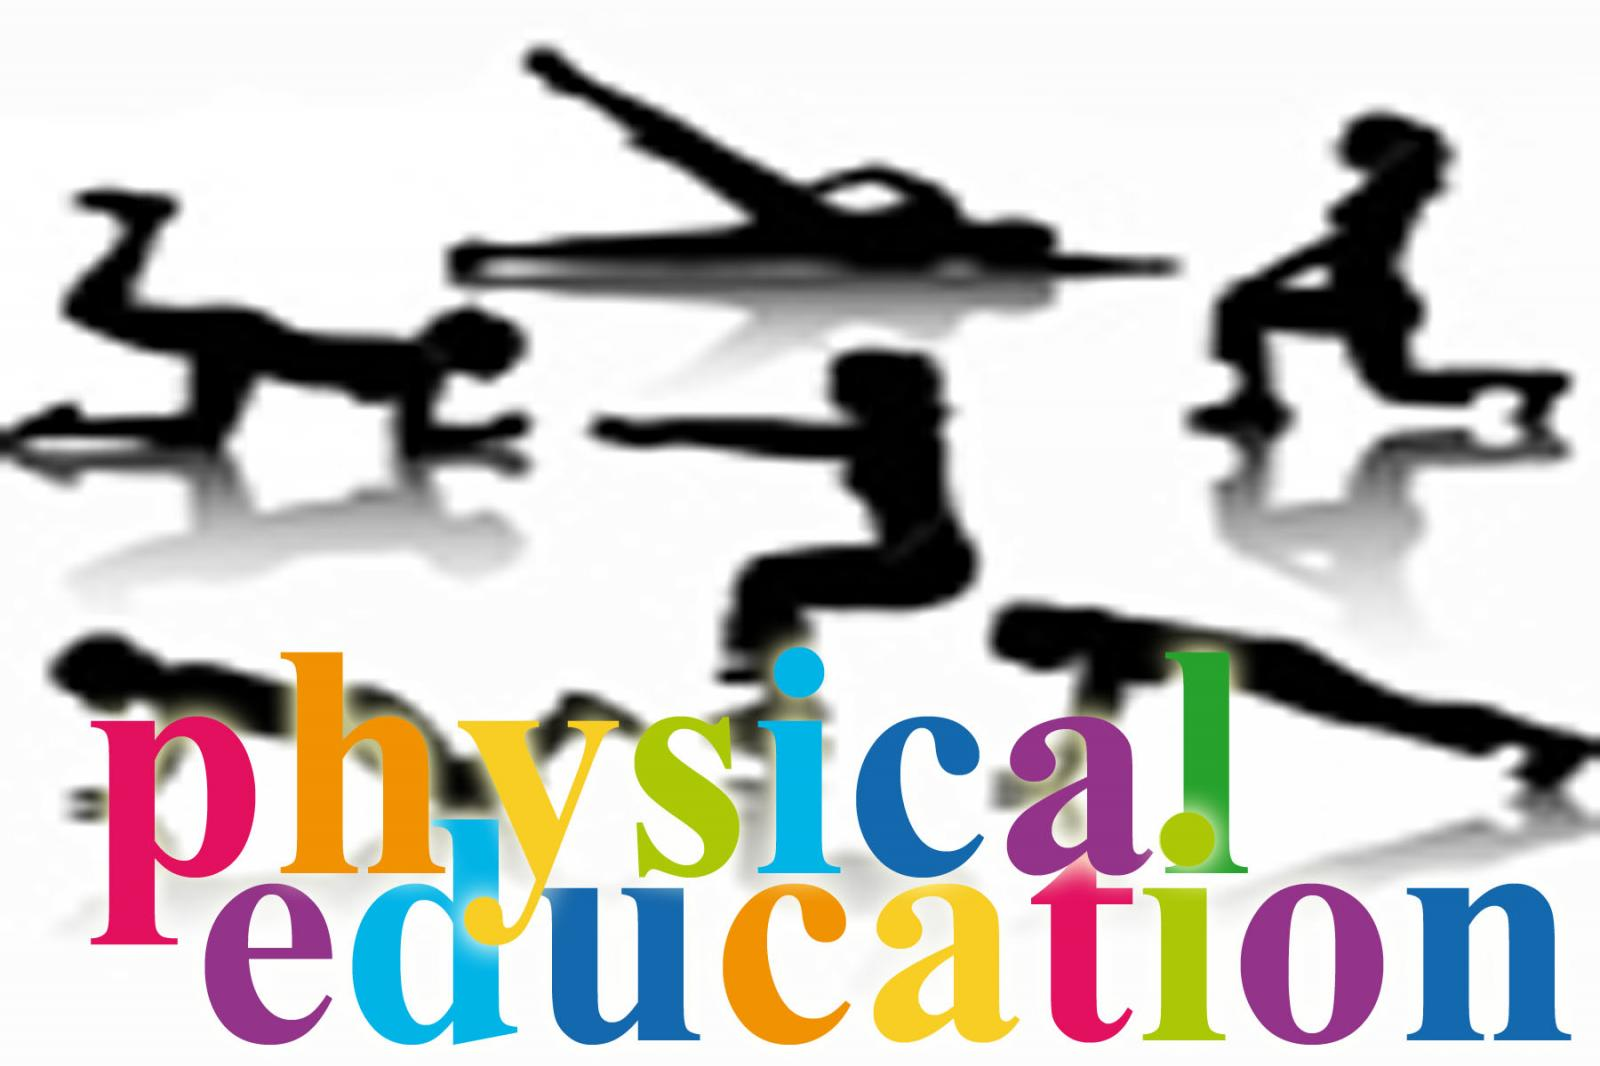 Physical education clipart clipartion physical education clip art free clipart images toneelgroepblik